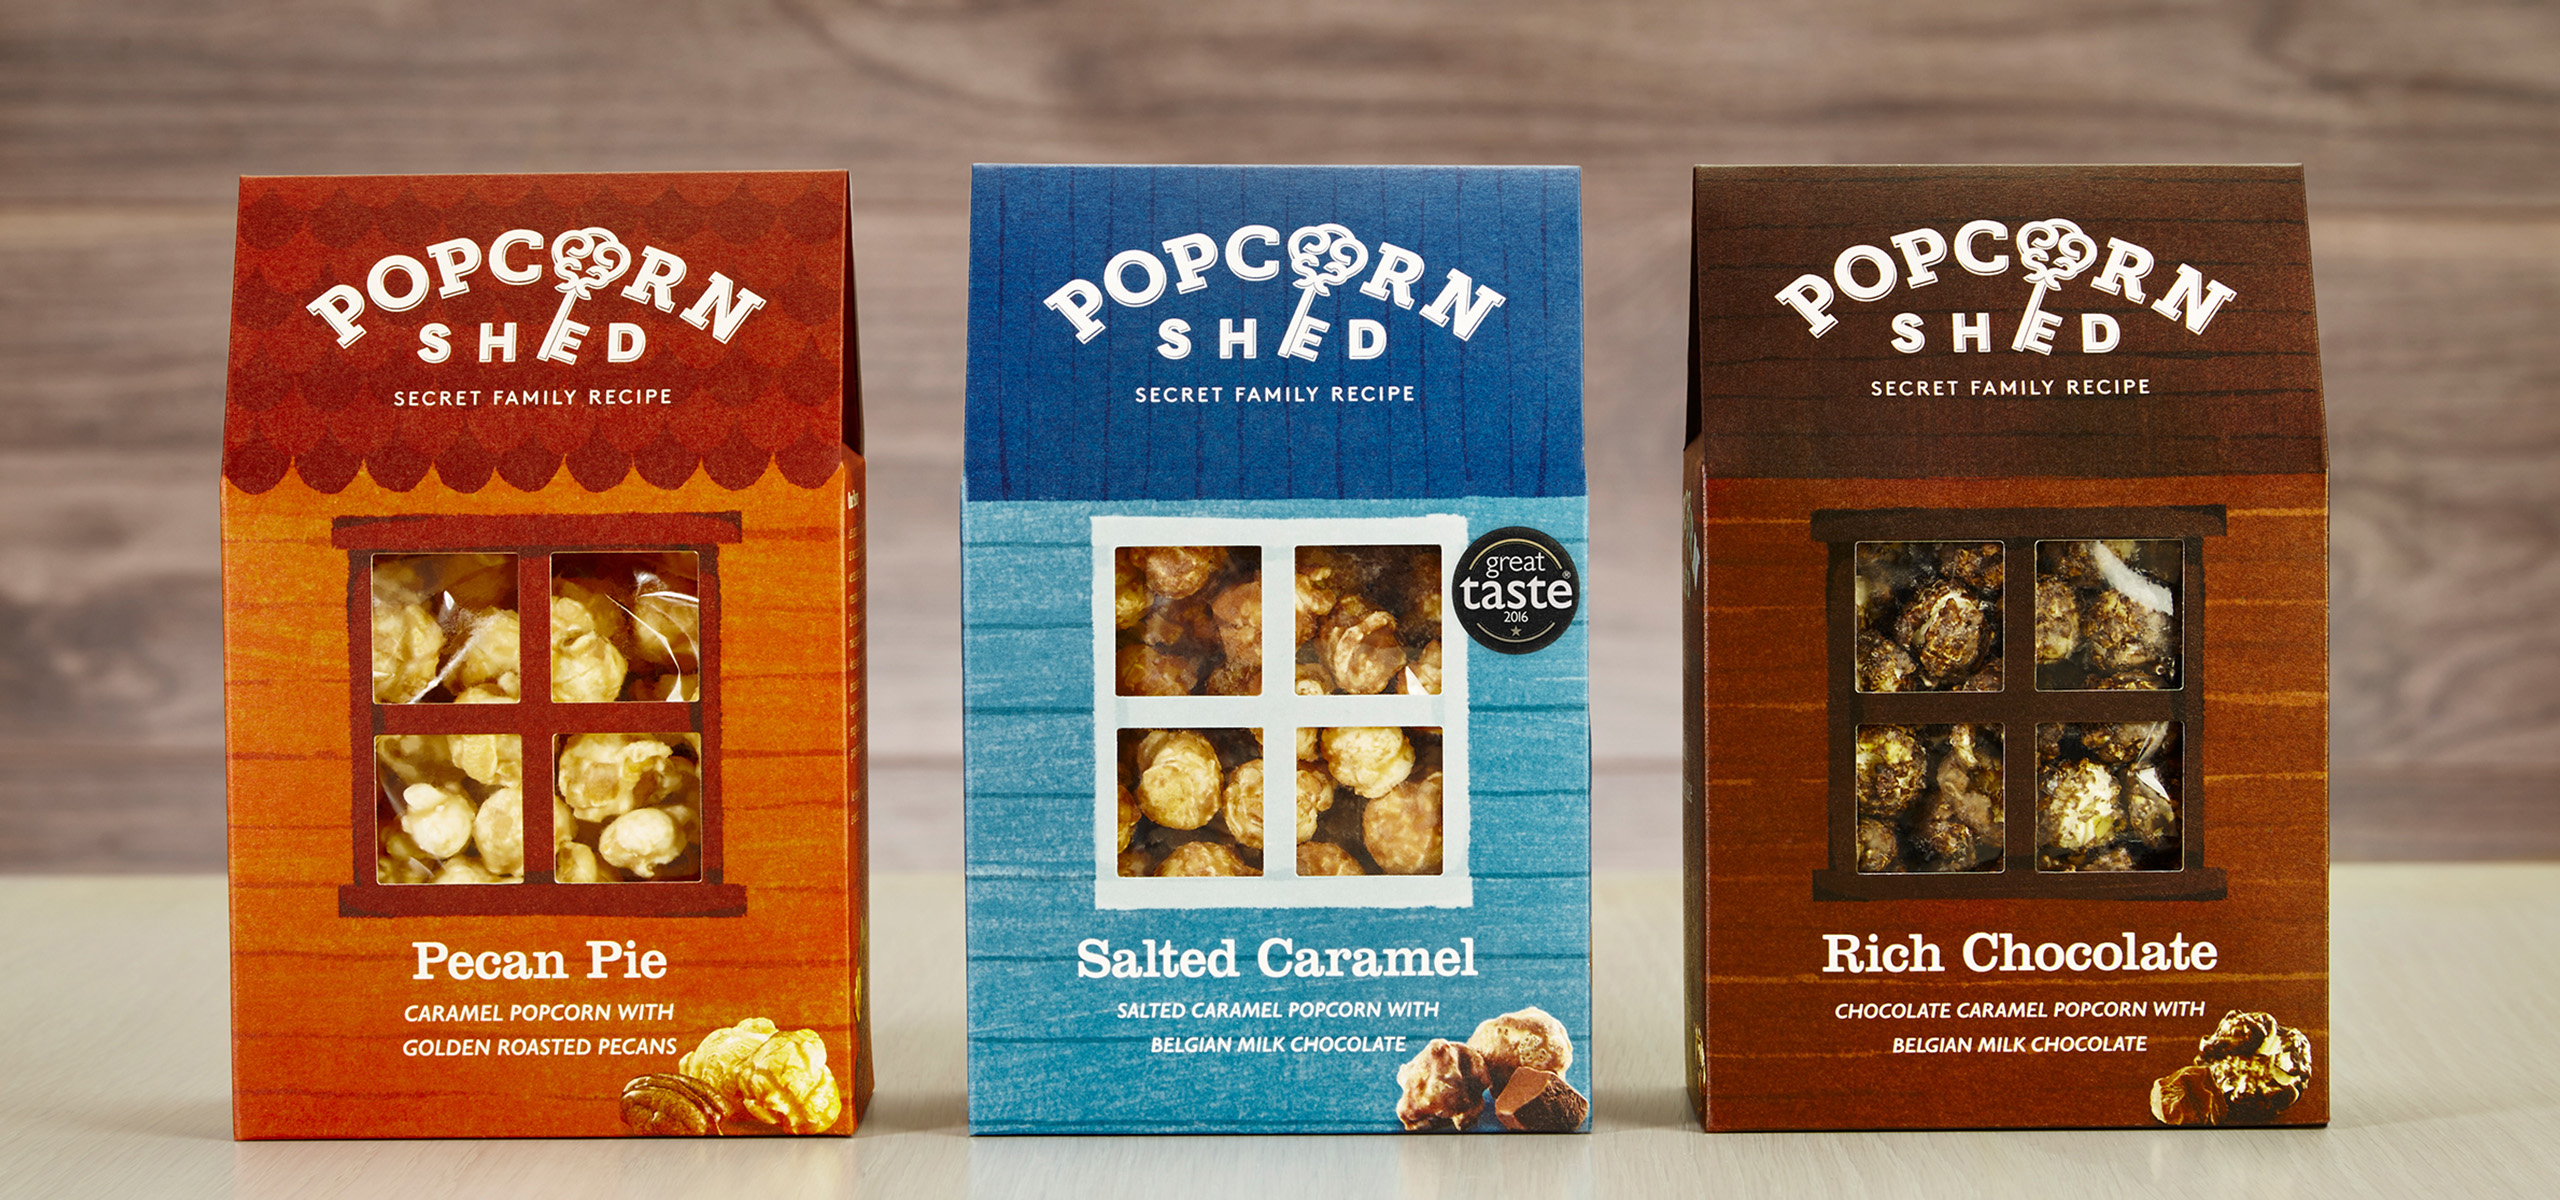 3 popcorn boxes packaging design for food startup brand Popcorn Shed, designed by White Bear Studio